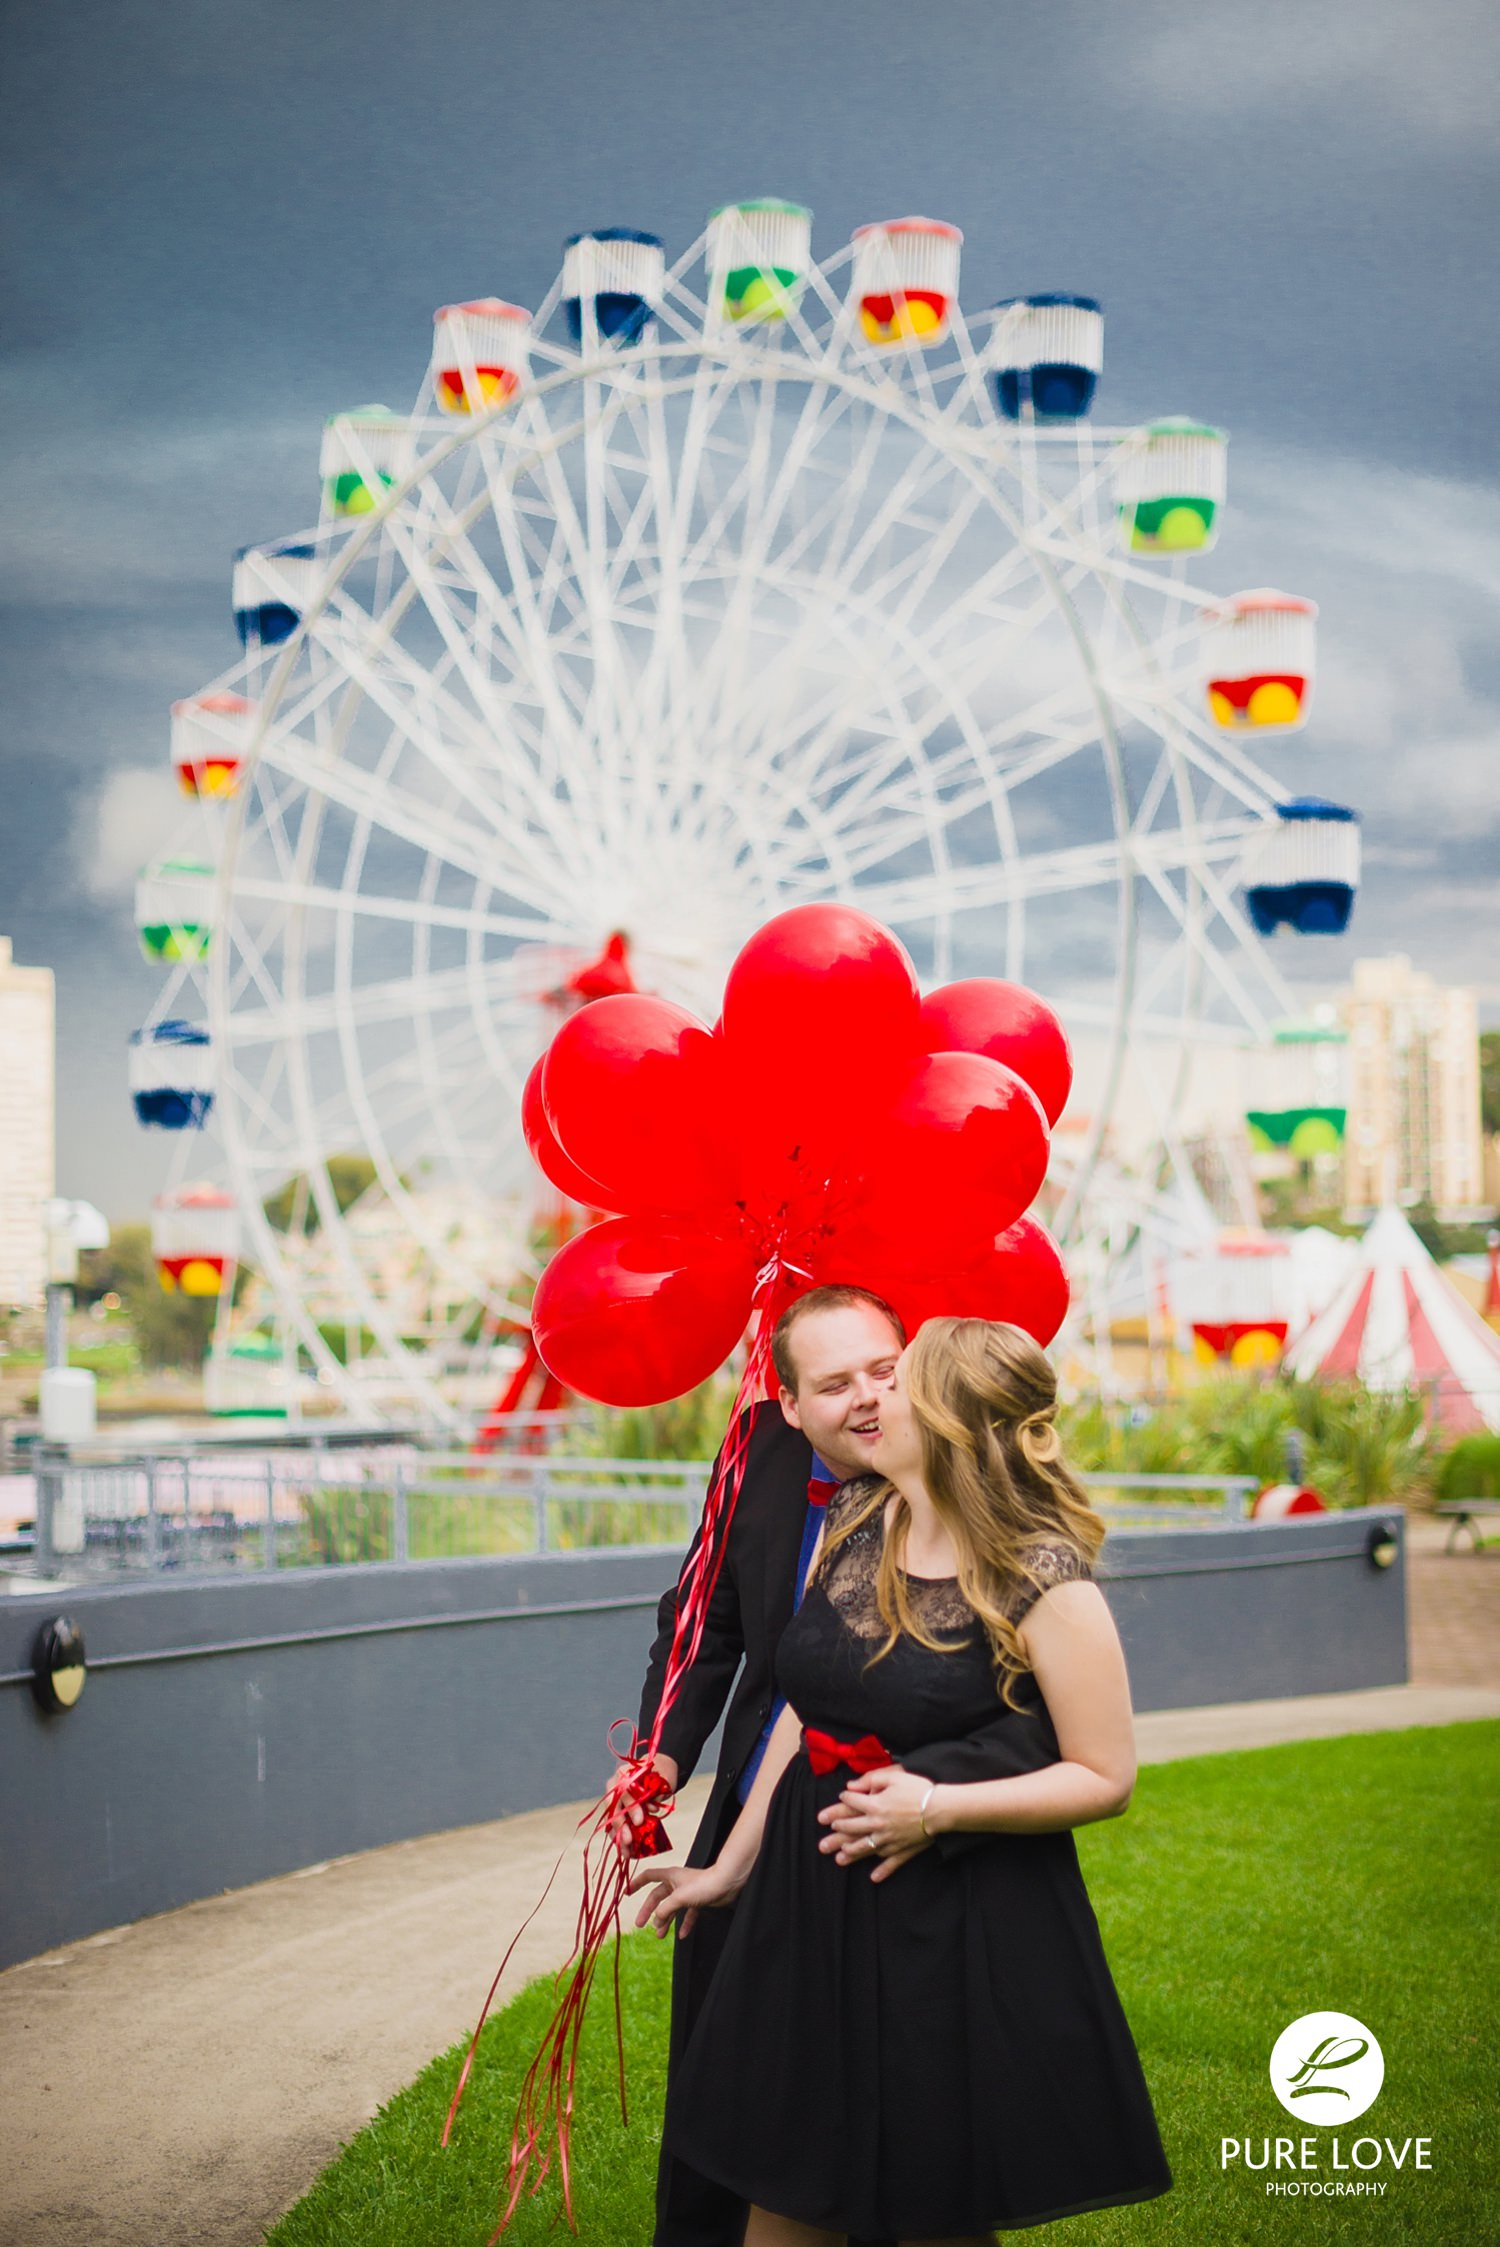 Fun Couple at amusement park during their engagement session. Lots of fun